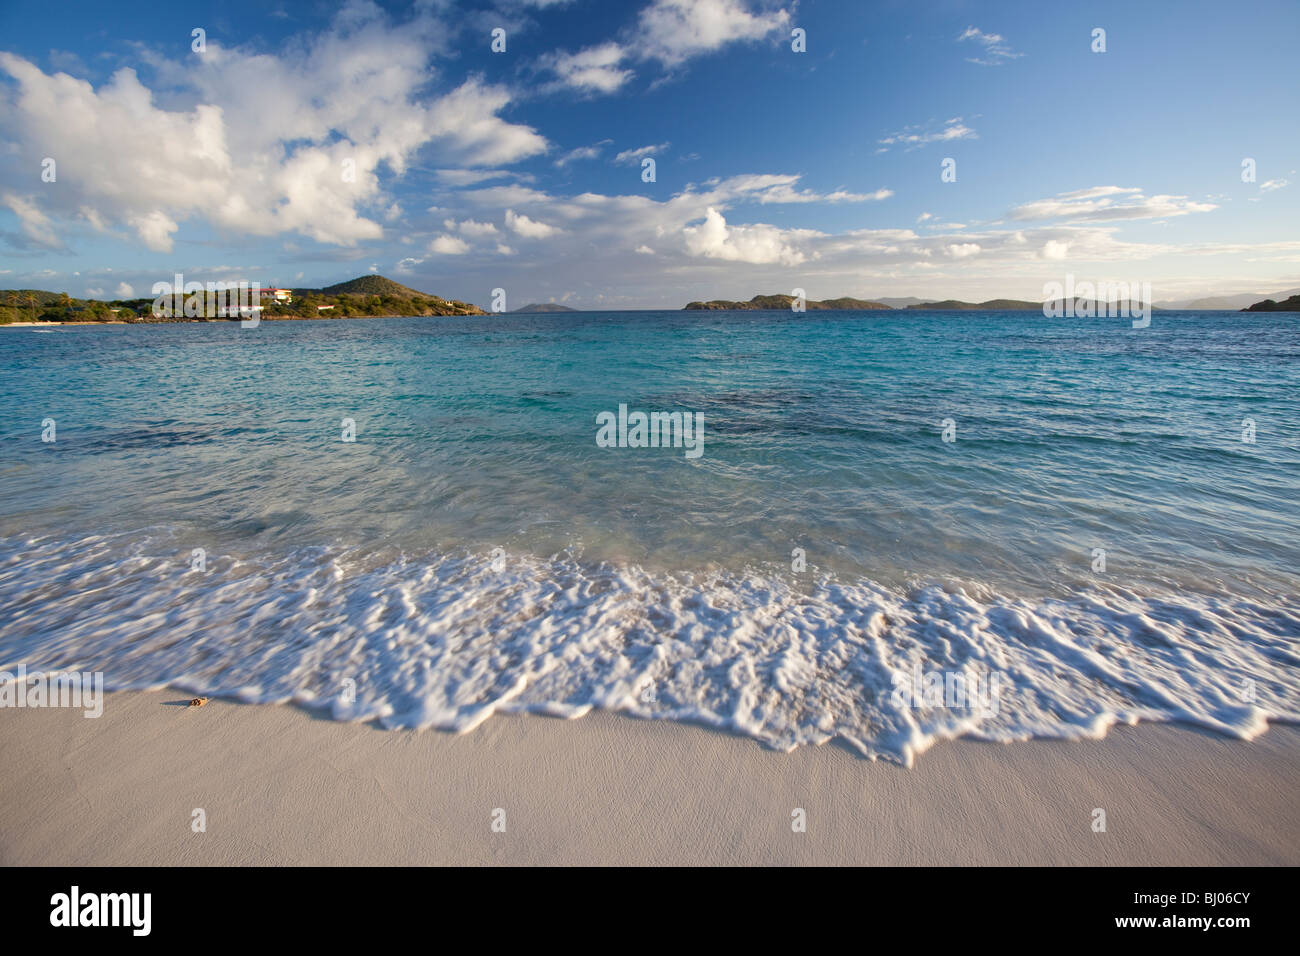 Morning surf at a tropical beach in US Virgin Islands - Stock Image